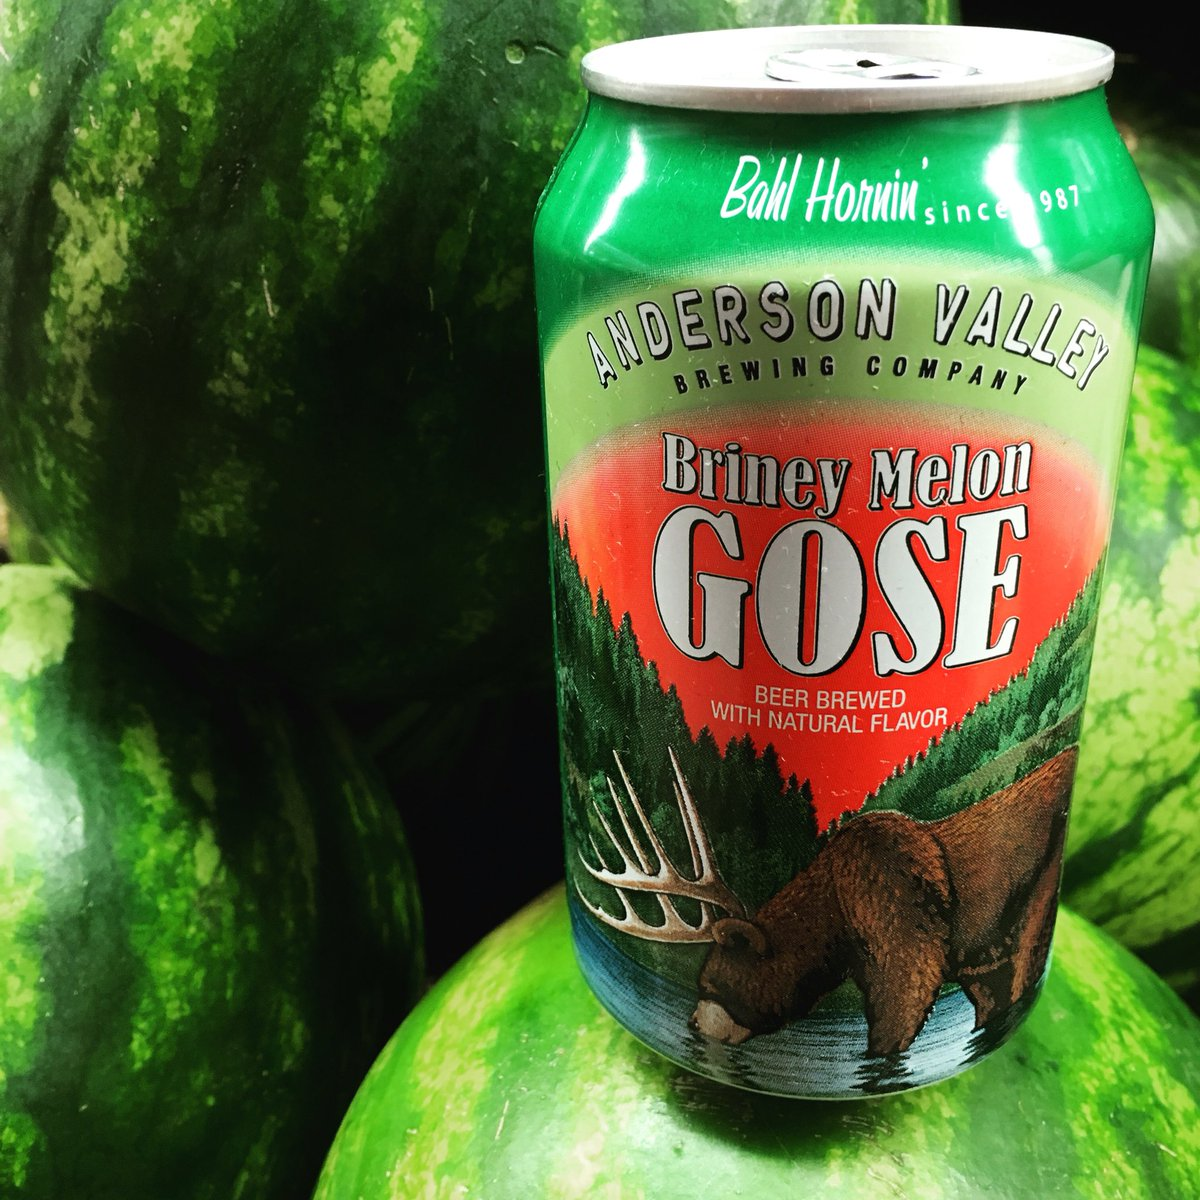 The FDA recommends 5 servings of fruit a day. Good thing these come in 6-packs. #watermelon #gose https://t.co/2AwZIovPUj